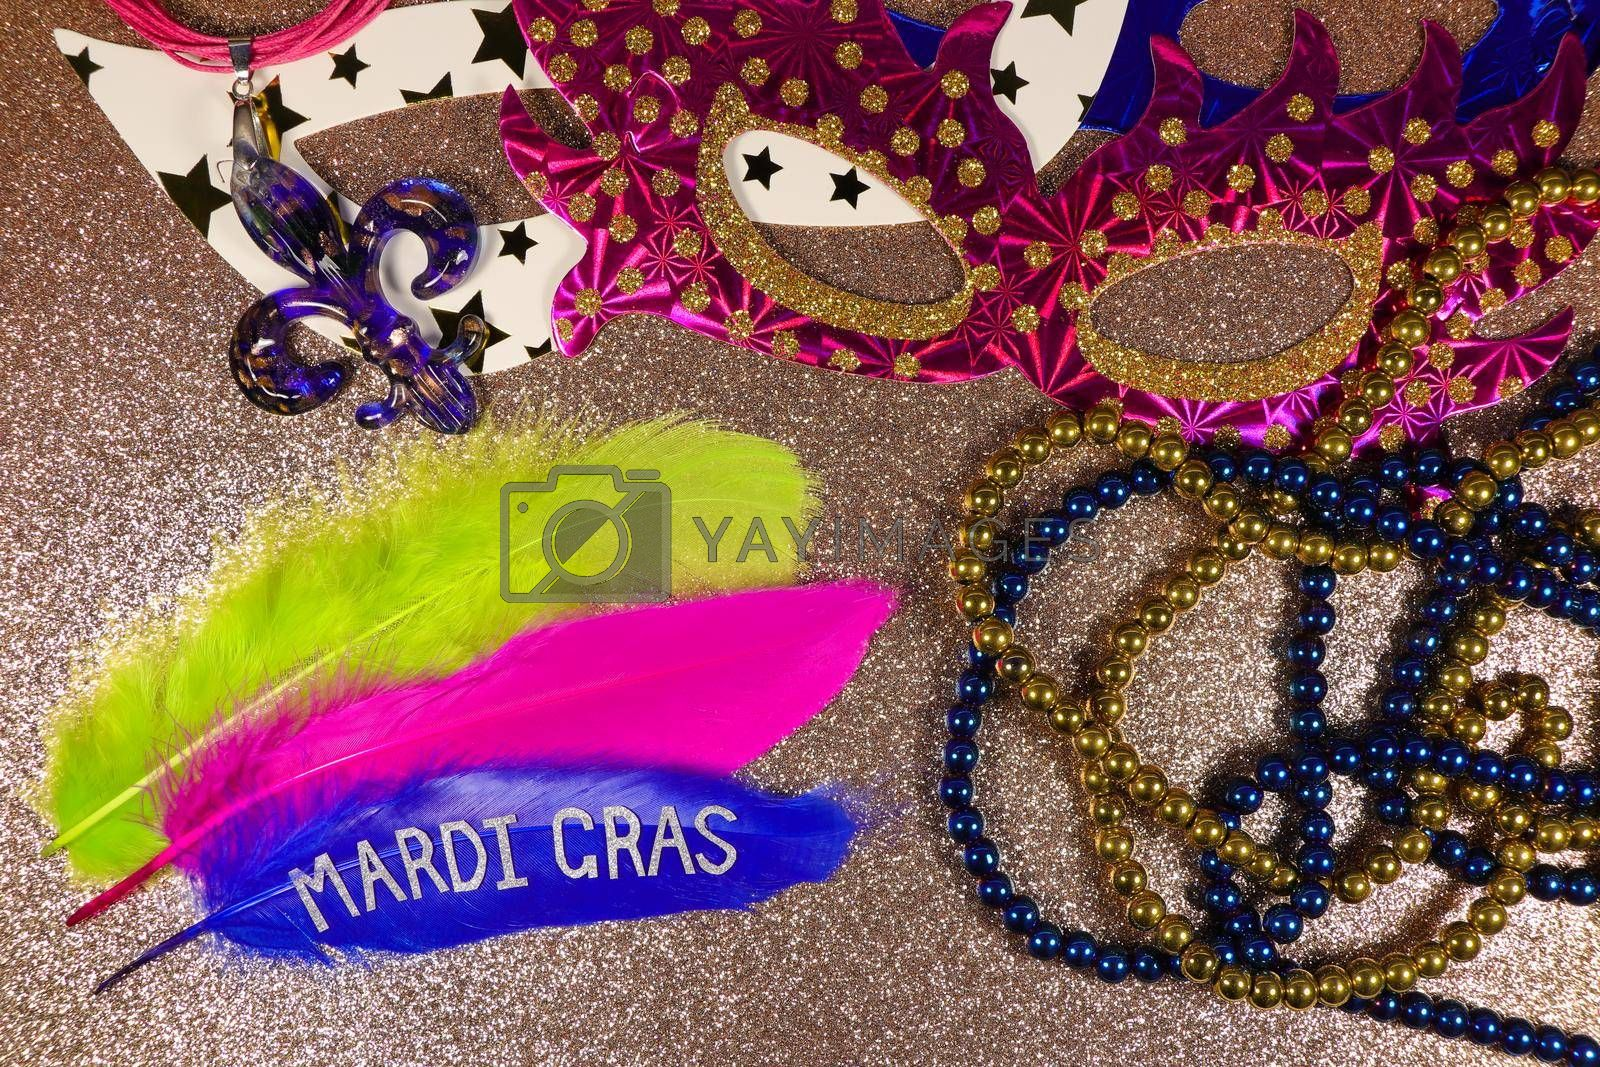 Mardi Gras carnival theme feathers and jewelry with party masks on textured gold surface layout